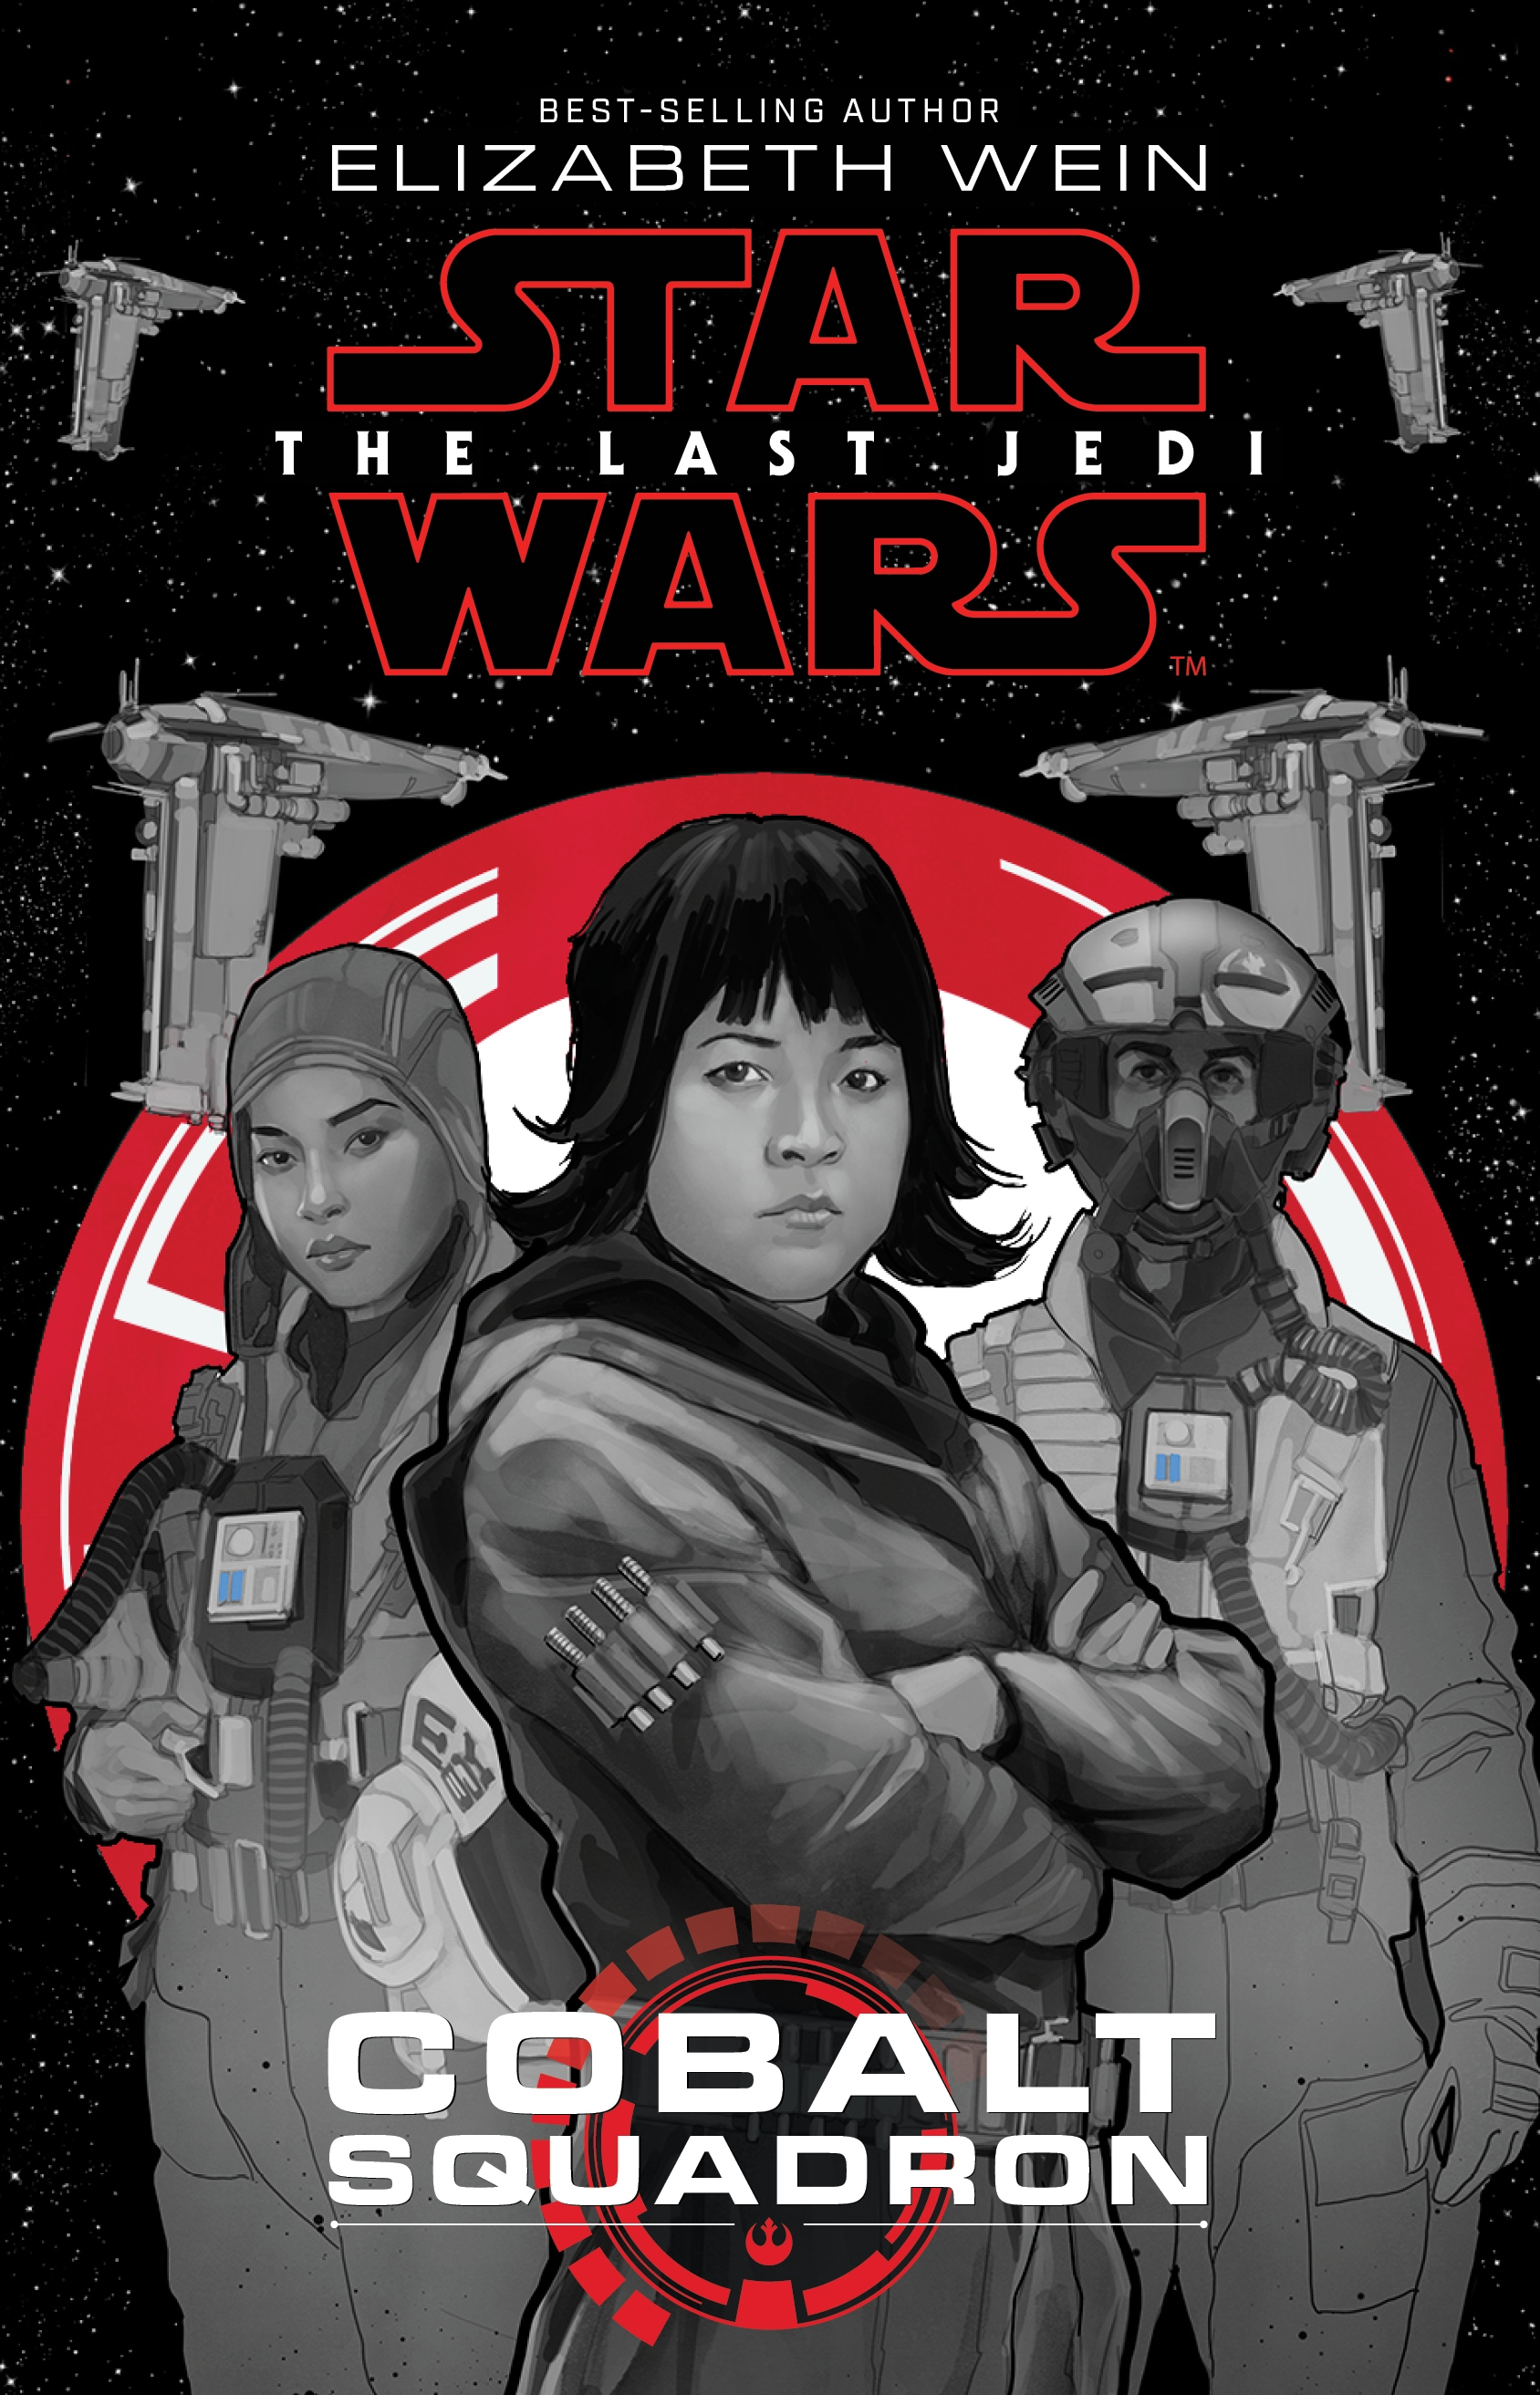 Friday Reads: Star Wars: Cobalt Squadron